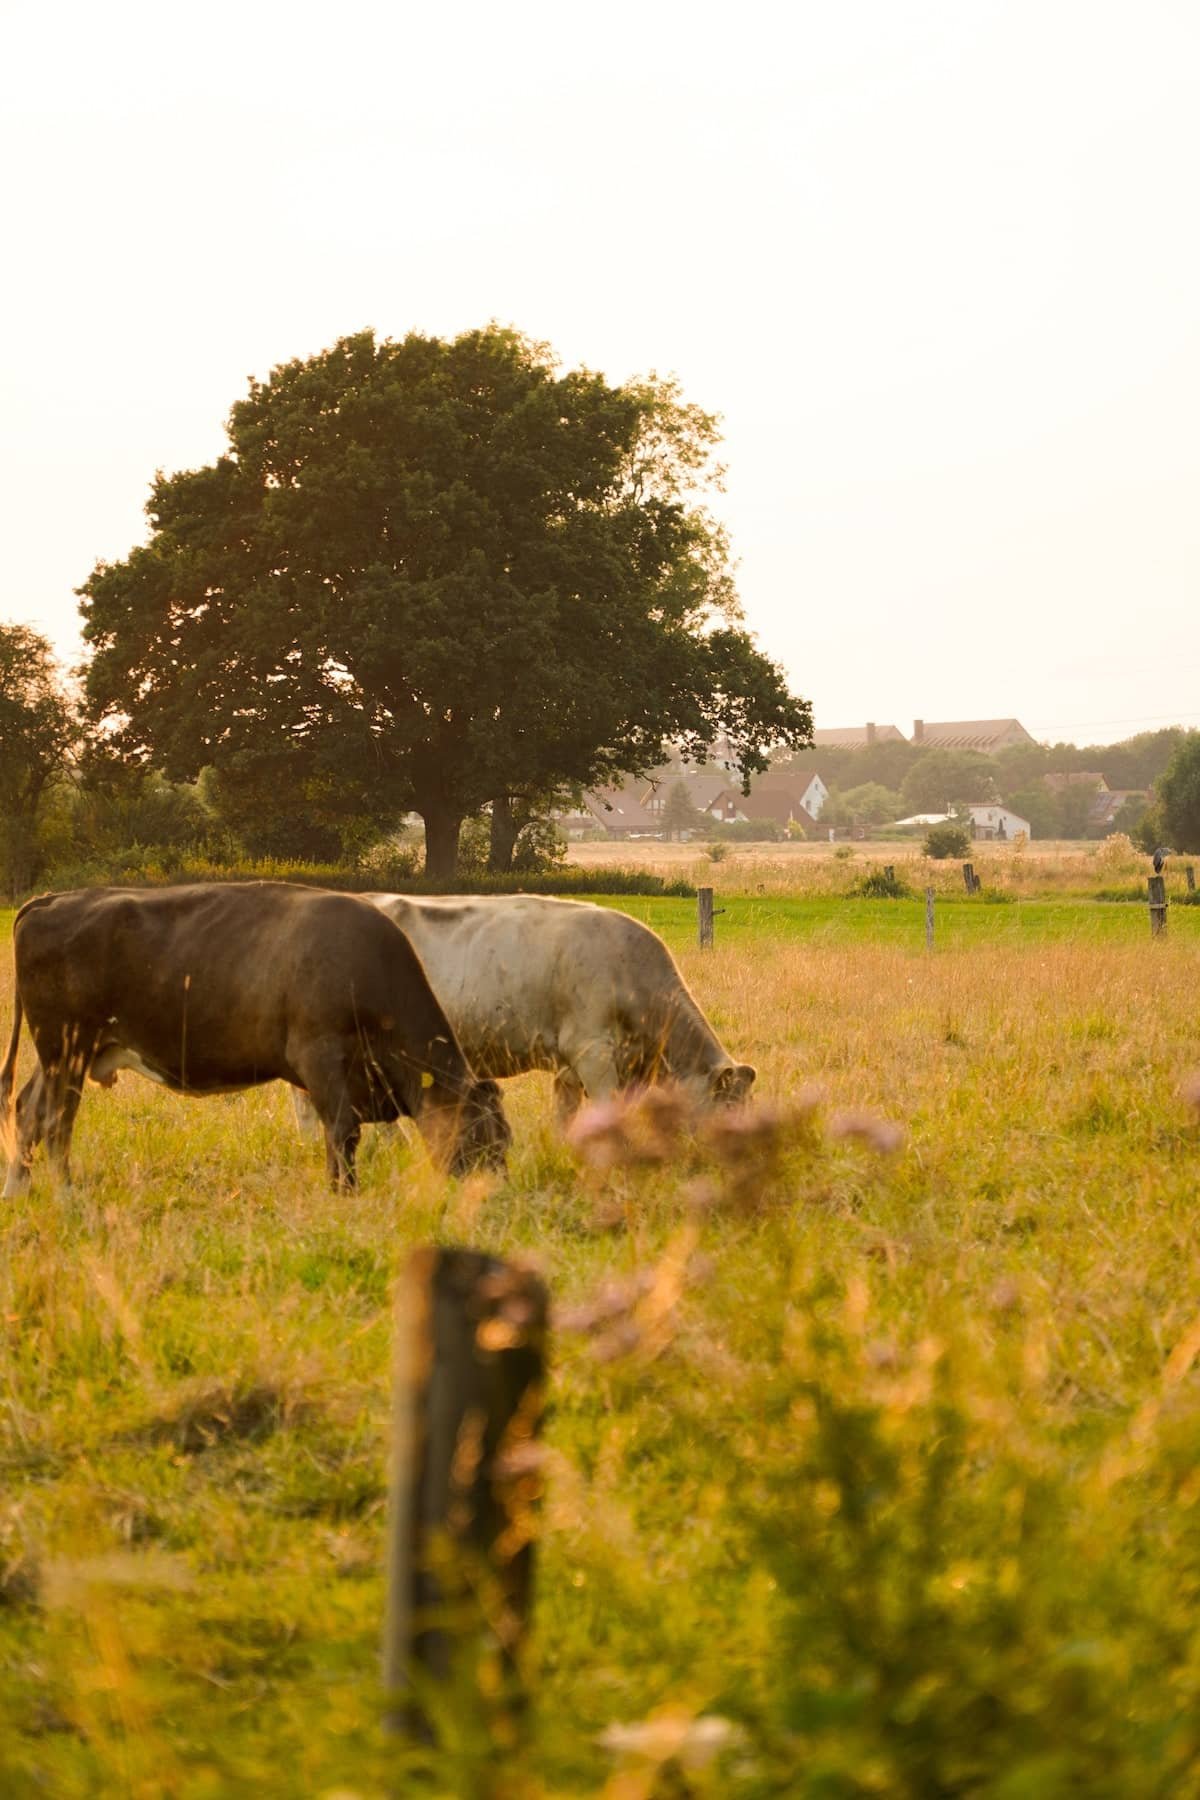 cows in field eating grass